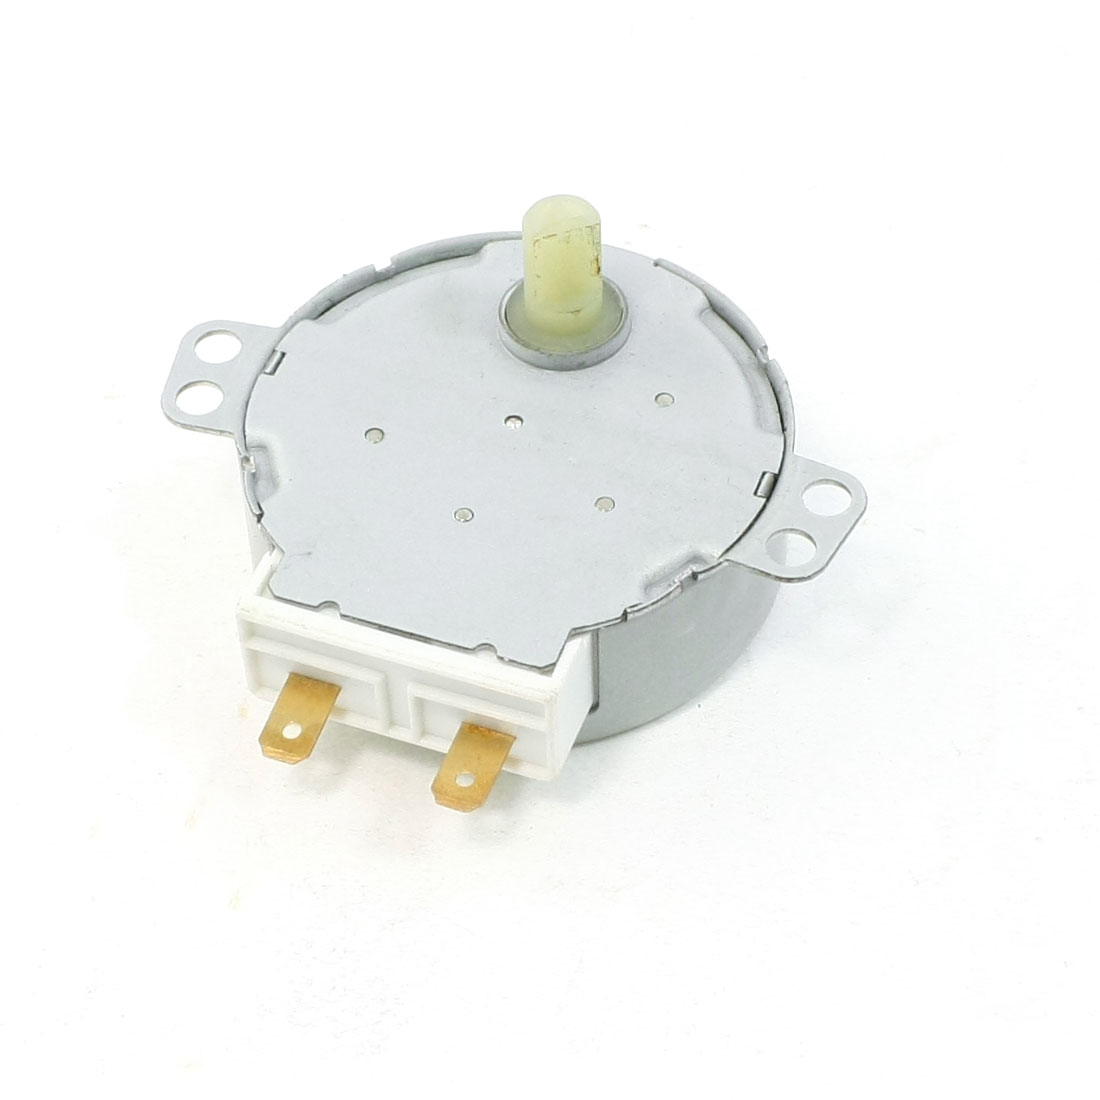 AC 220V/240V 4W 4-4.8 RPM Microwave Oven Turntable Synchronous Motor